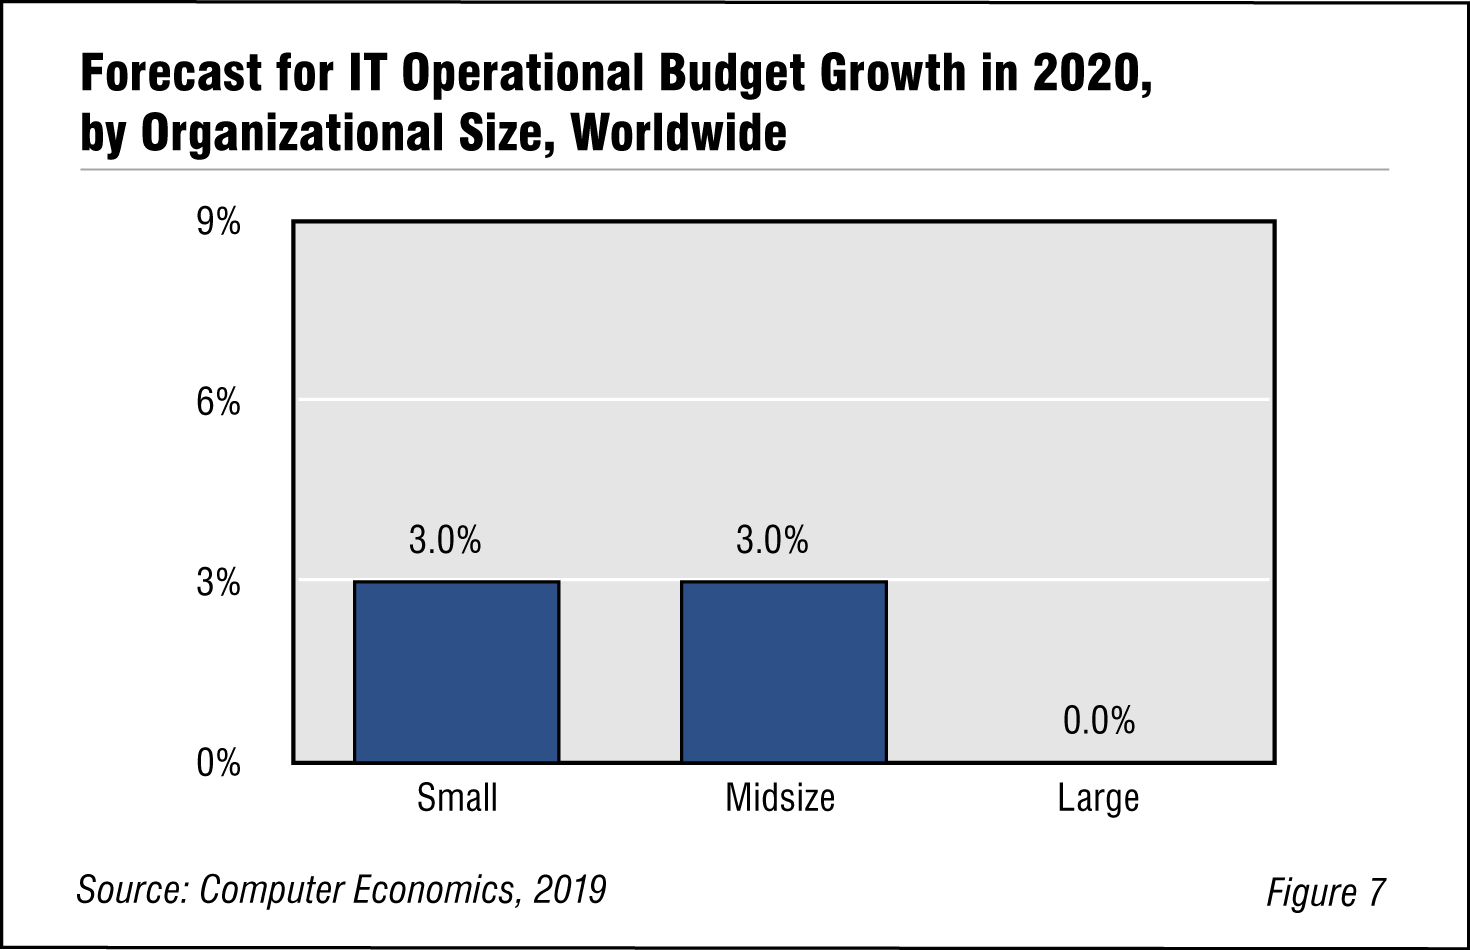 Forecast for IT Operational Budget Growth in 2020, by Organizational Size, Worldwide